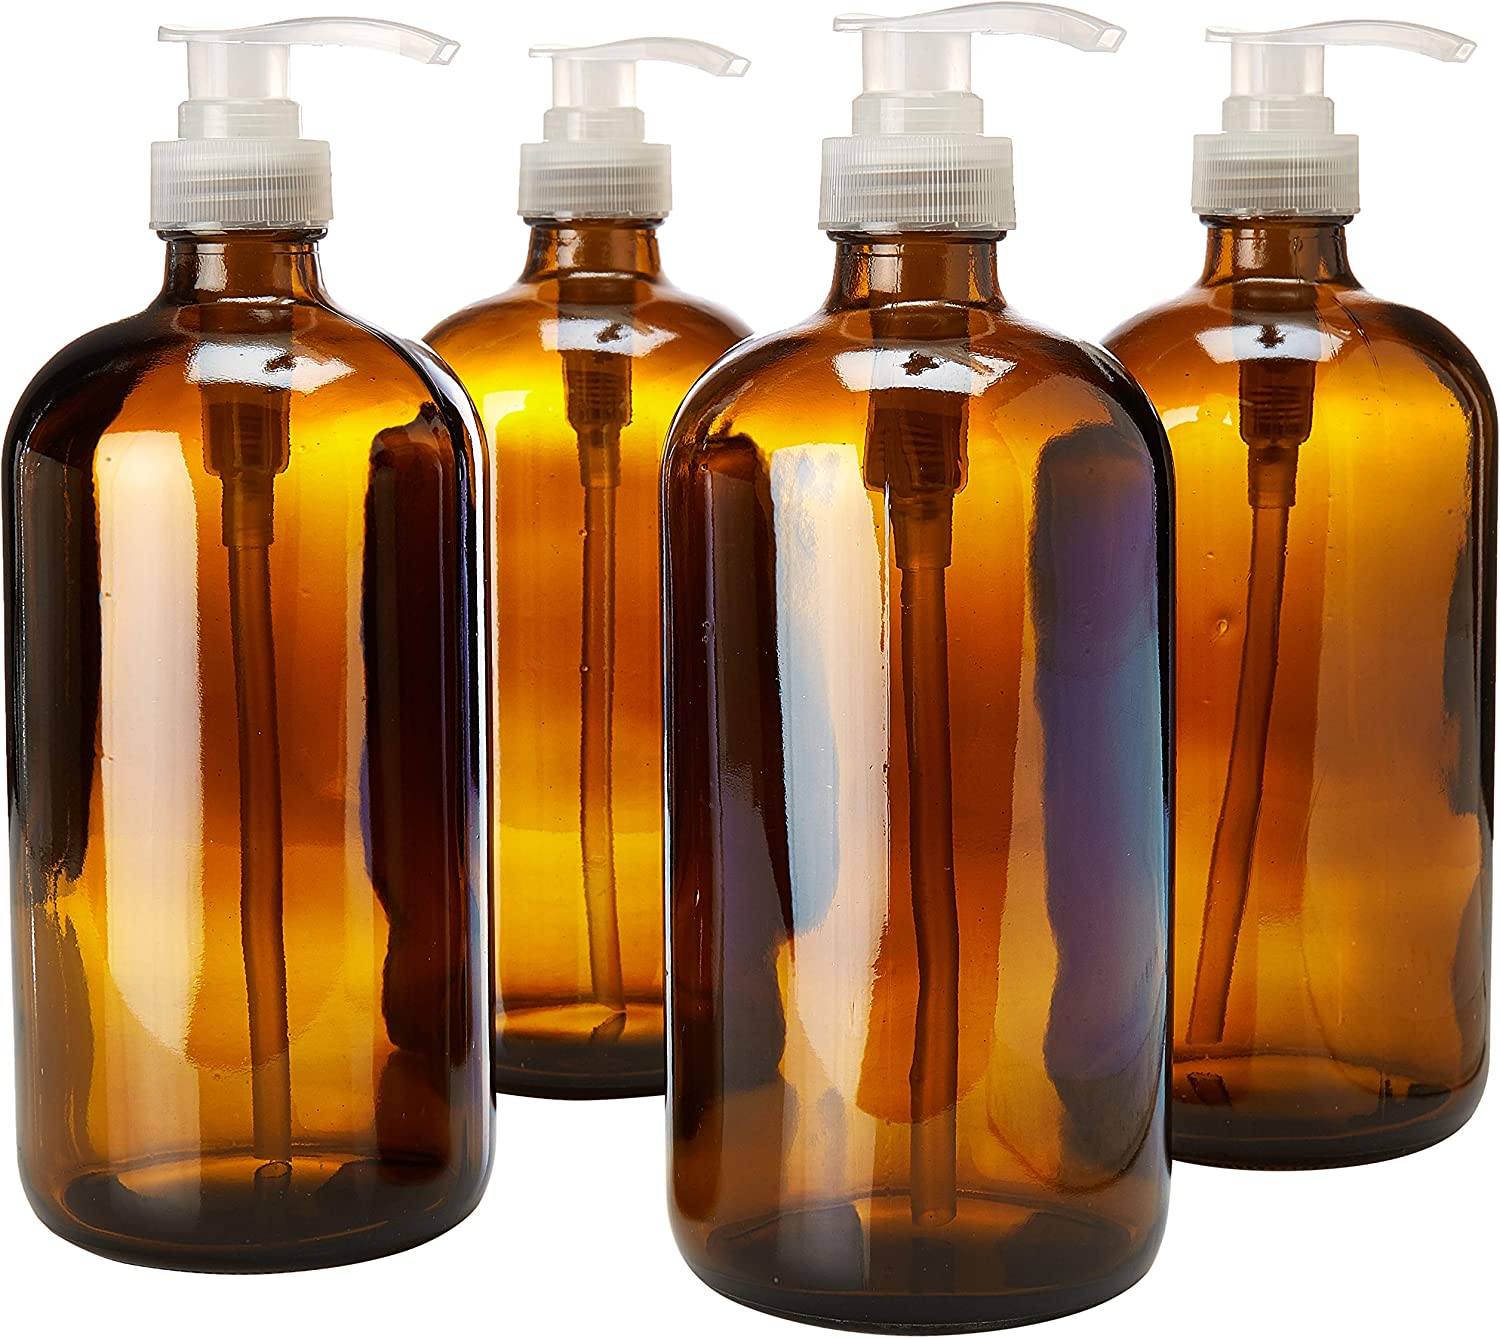 kitchentoolz 32 Ounce Large Amber Glass Bottles for Laundry Detergent with Natural Color Pumps. Great for Lotions, Soaps, Oils, Sauces and DIY Laundry or Dish Detergent- Food Safe (Pack of 4)